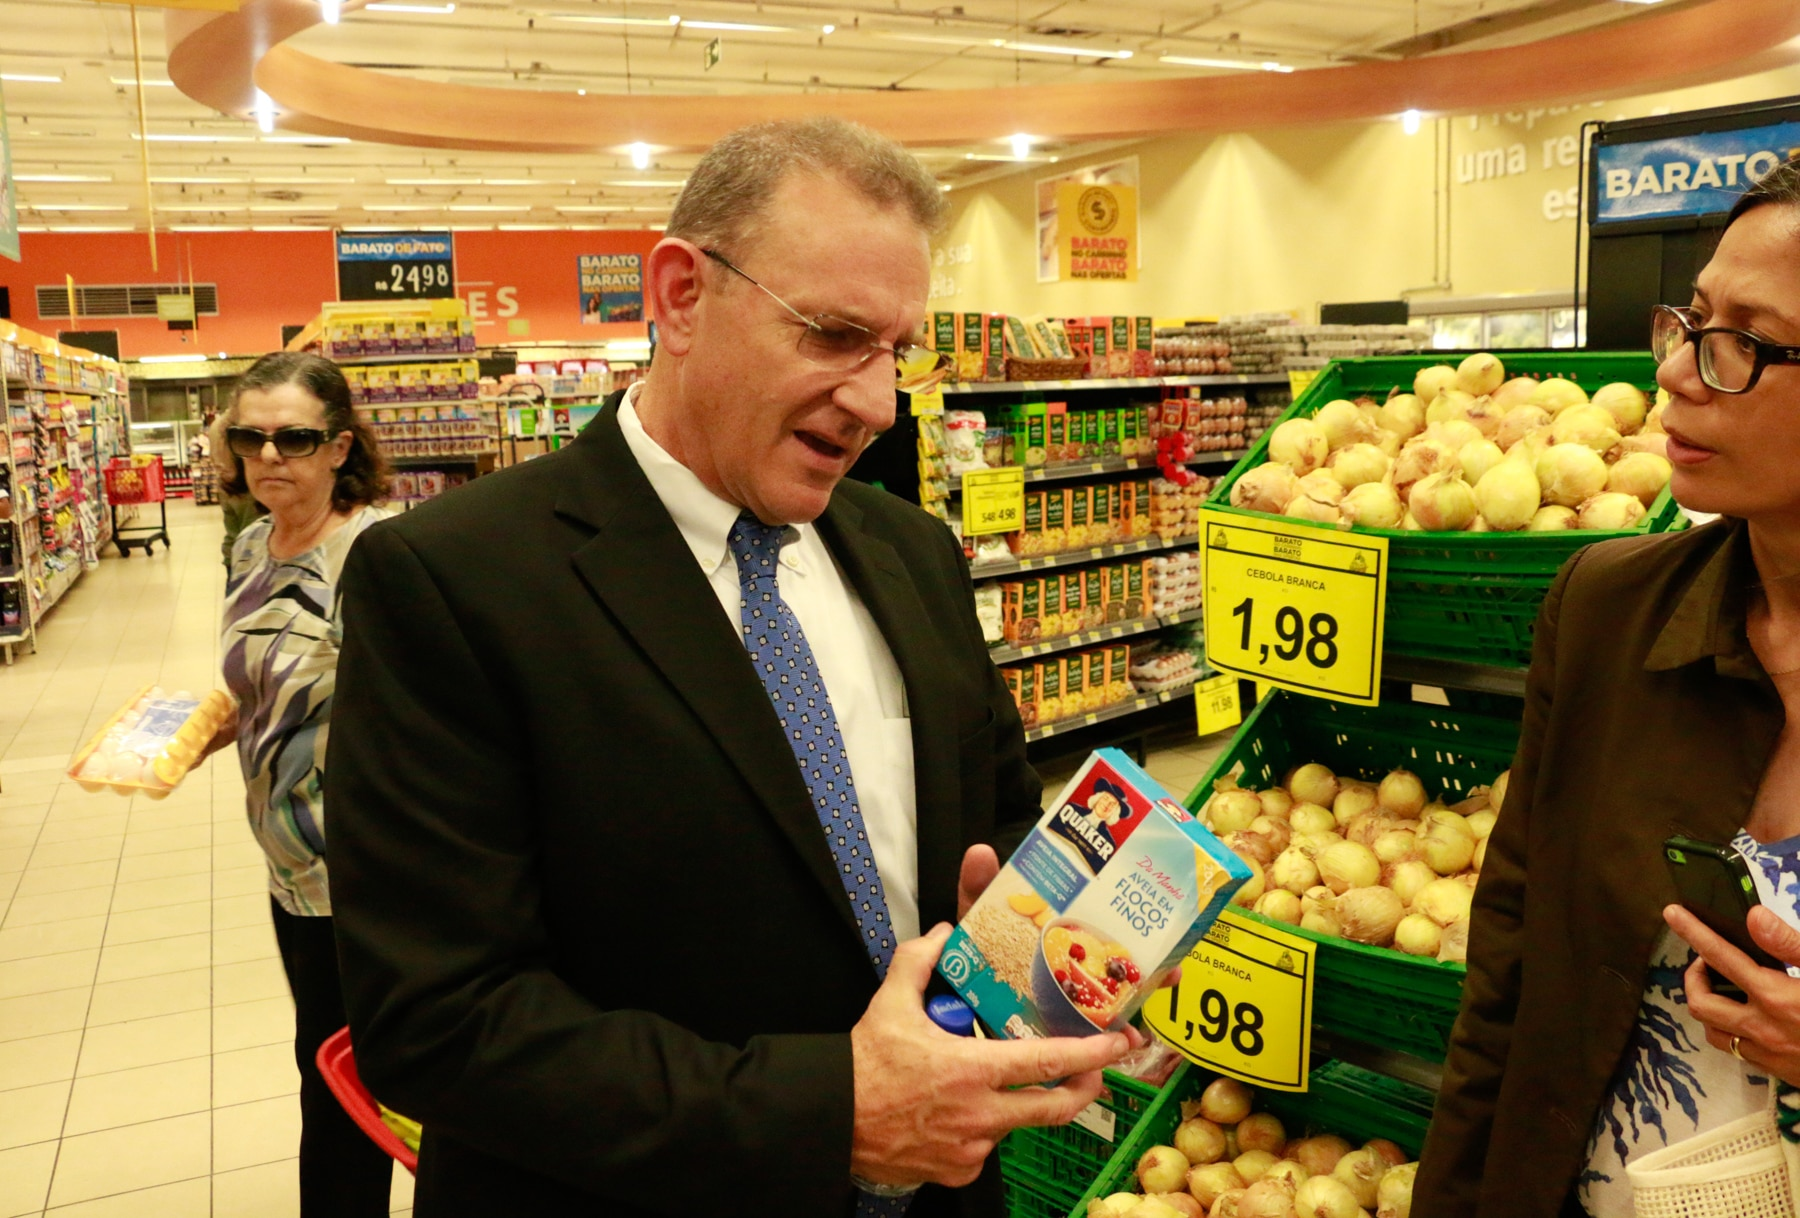 Man wearing business suit holding product in grocery store (USDA)